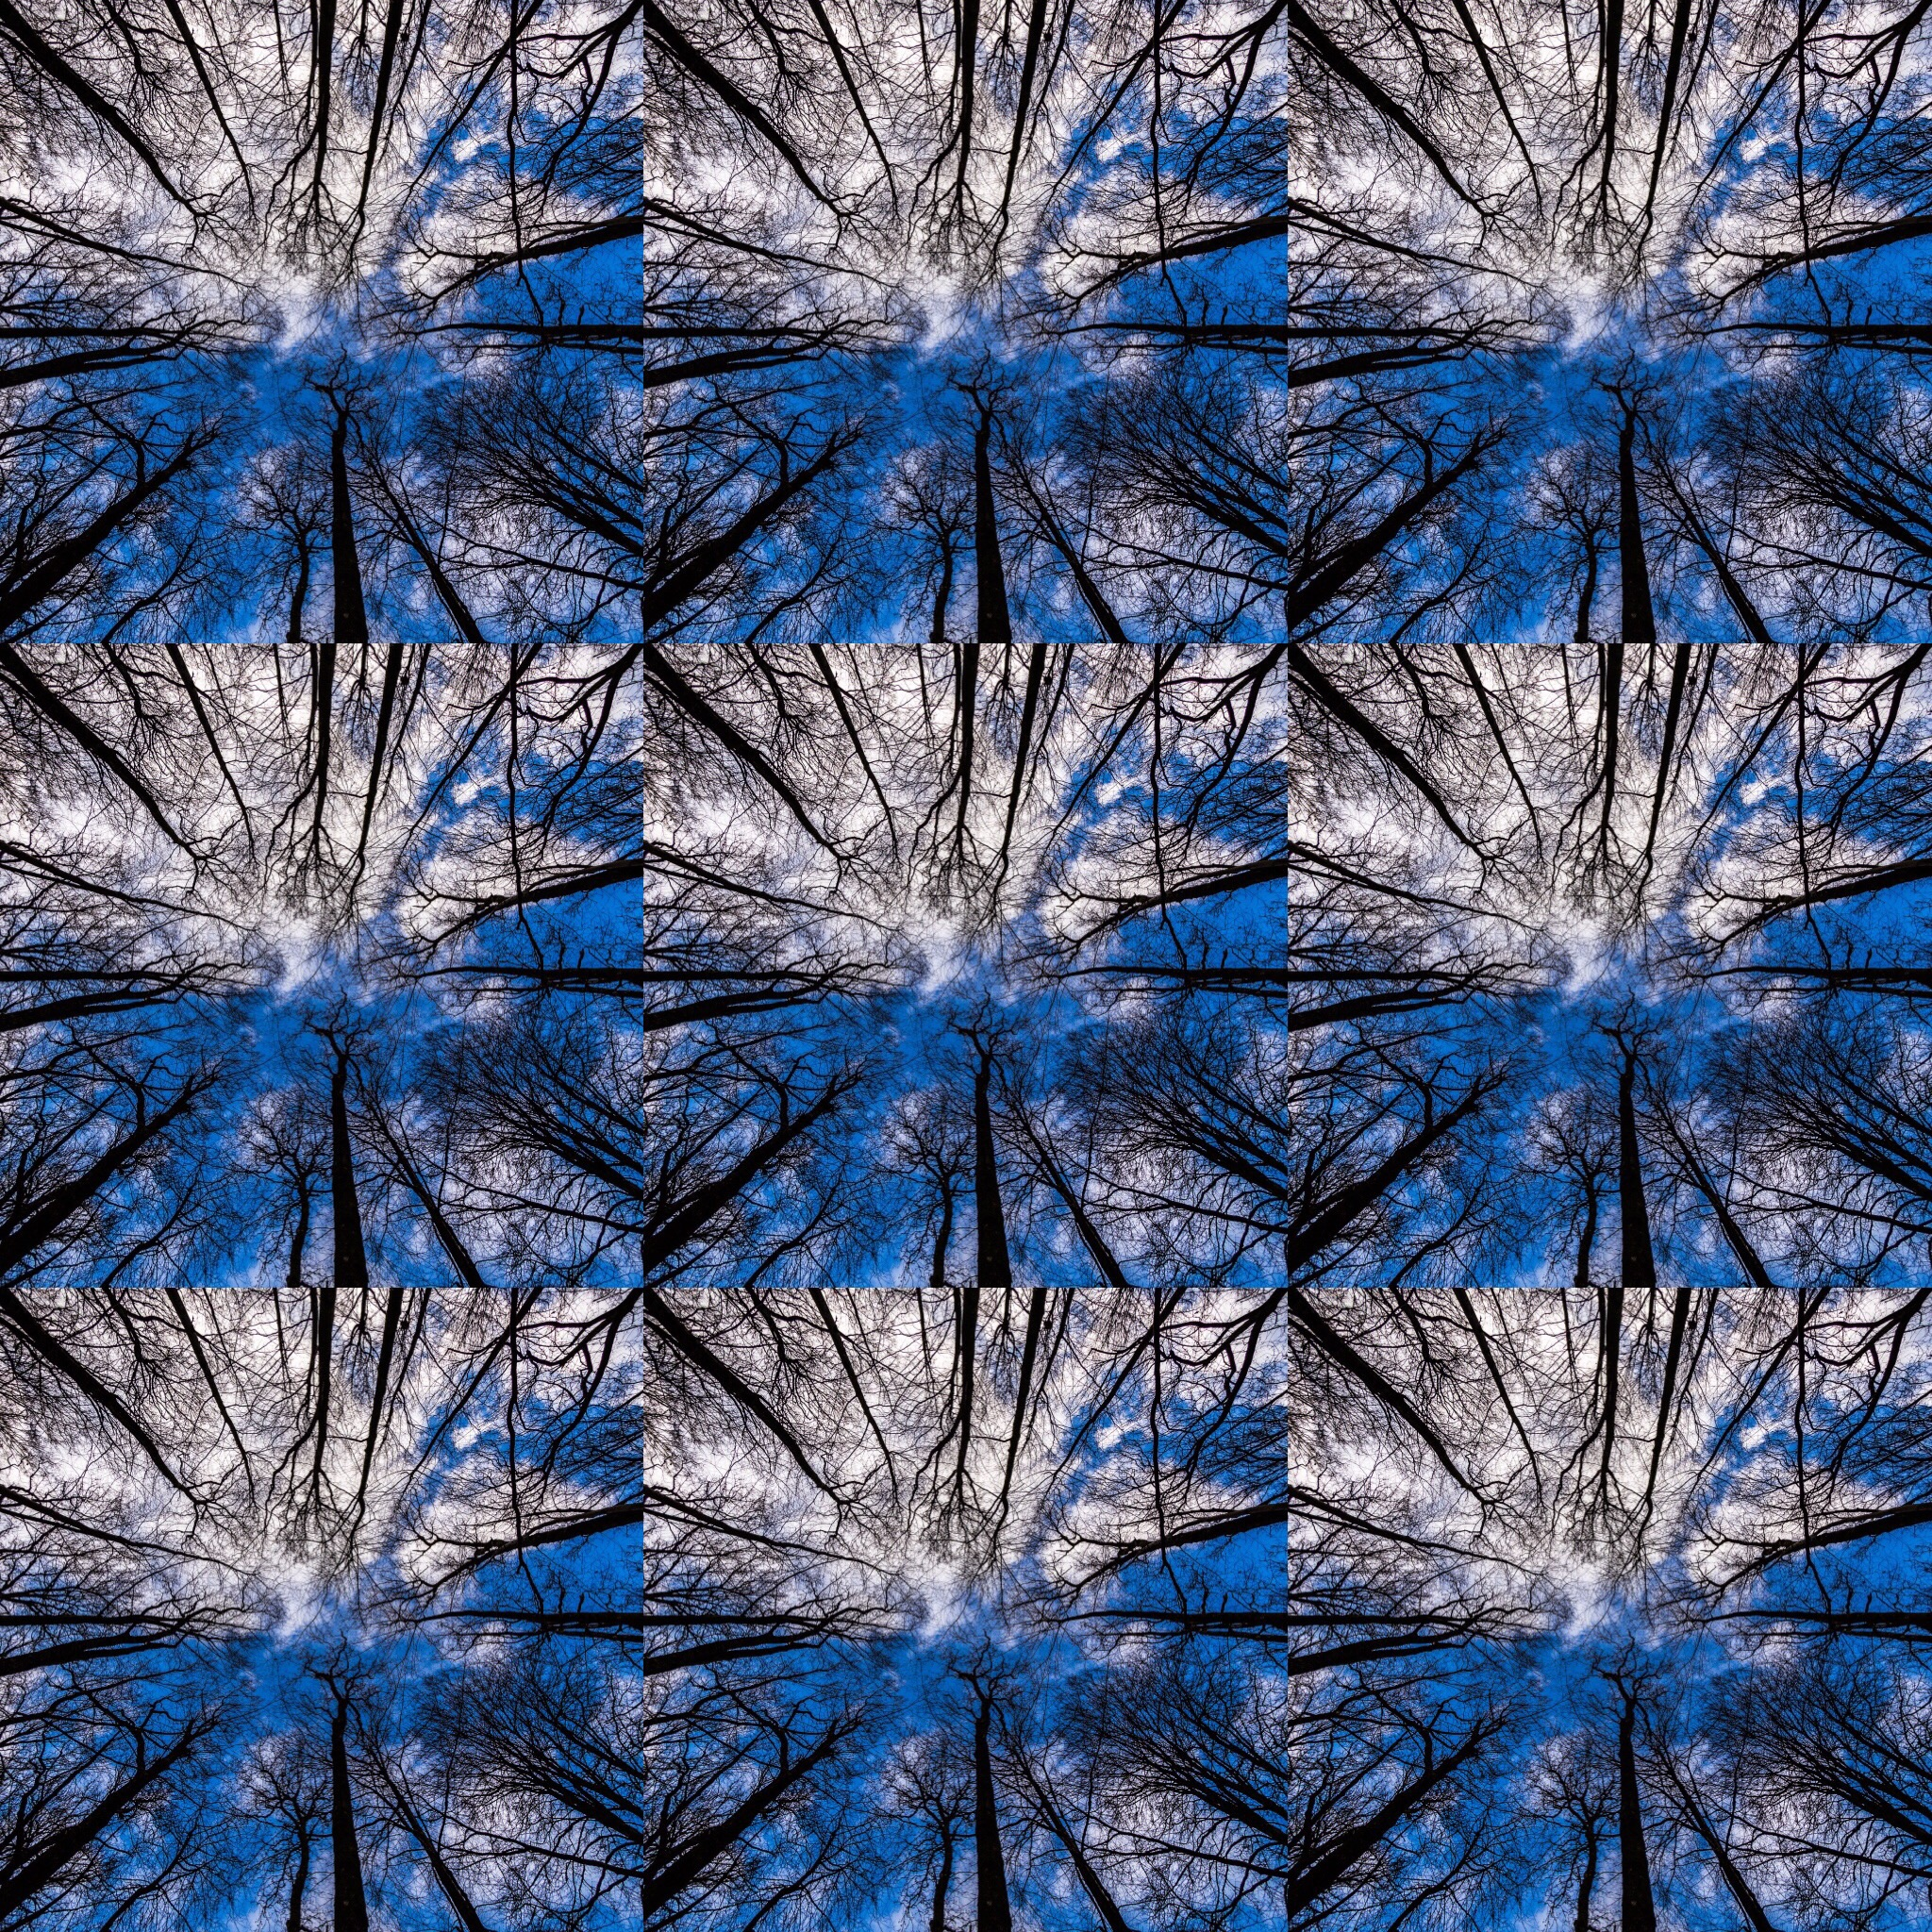 9 Trees - a photo montage by Hampshire Photographer Rick McEvoy